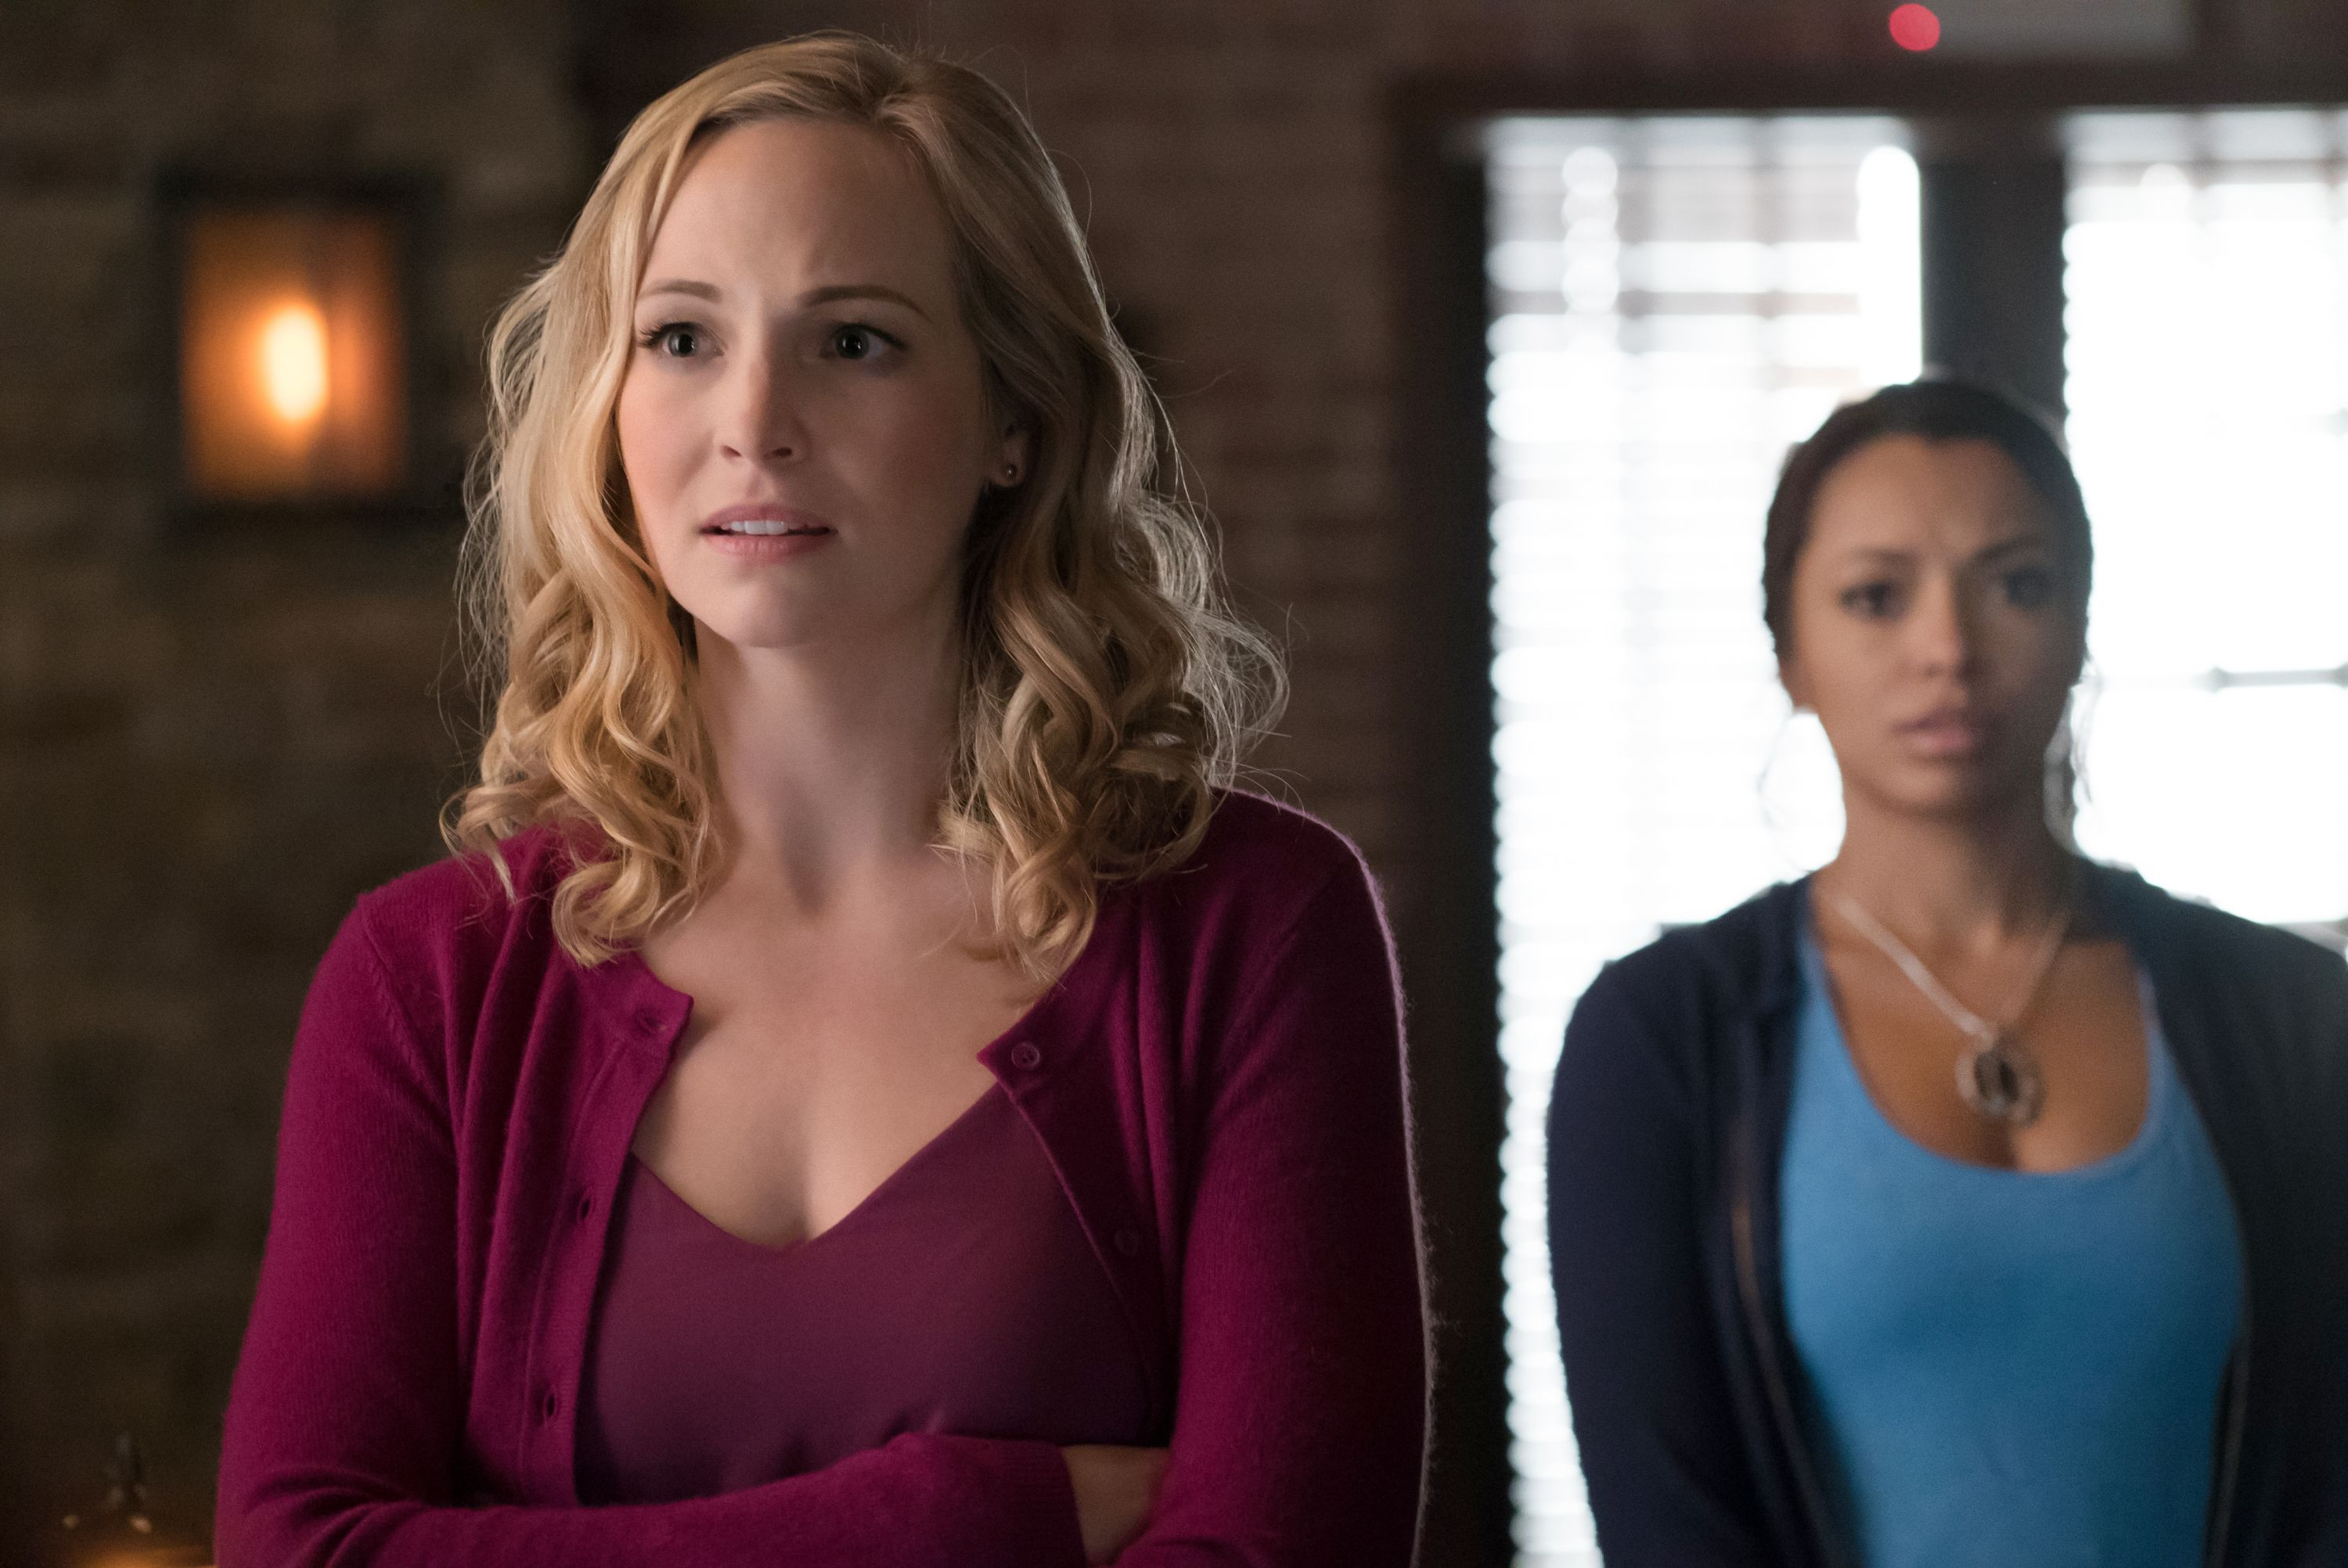 The Vampire Diaries character Caroline will appear in The Originals